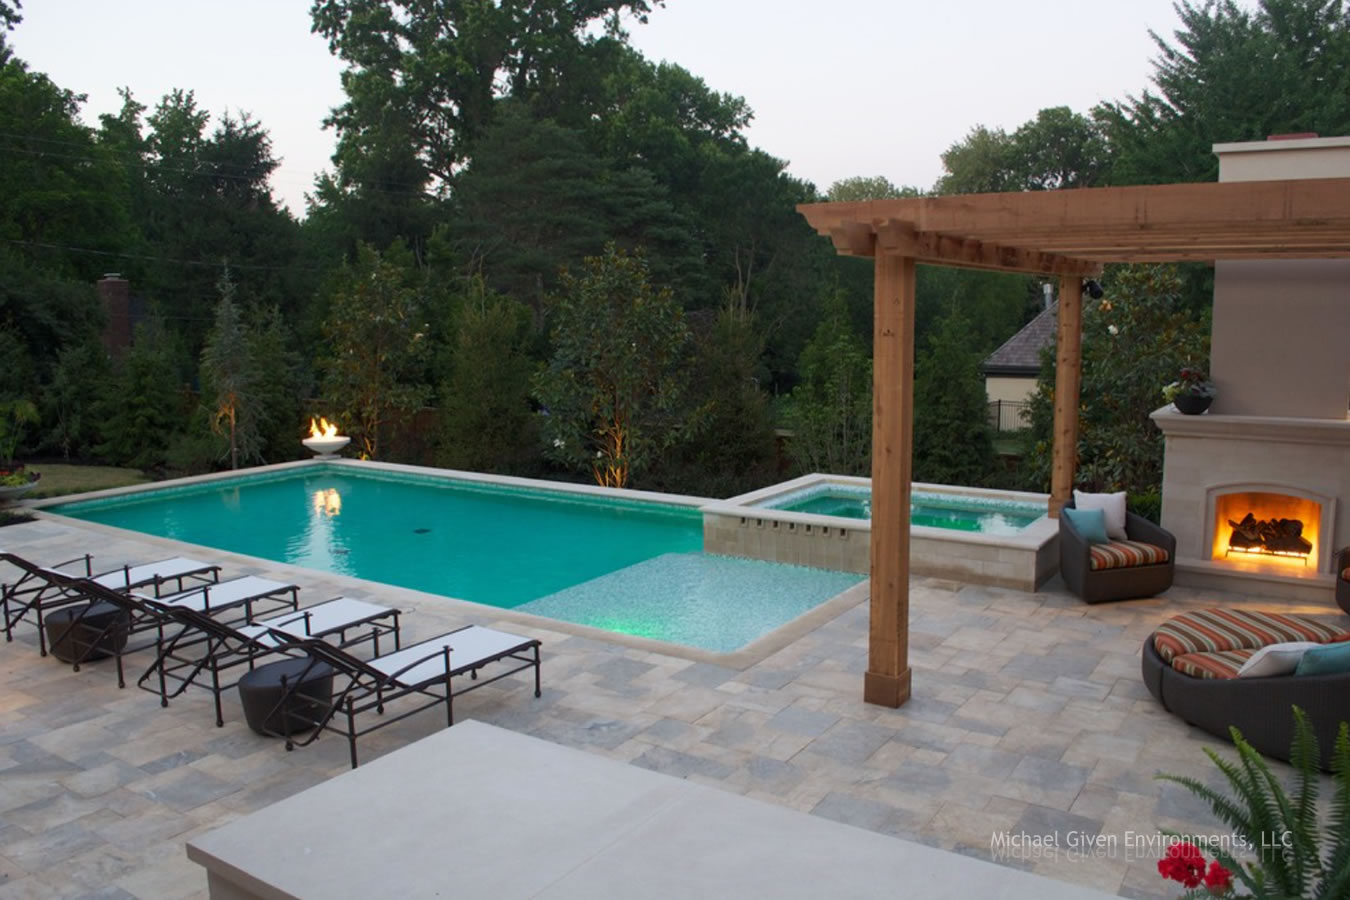 Pool & Outdoor Living Environment